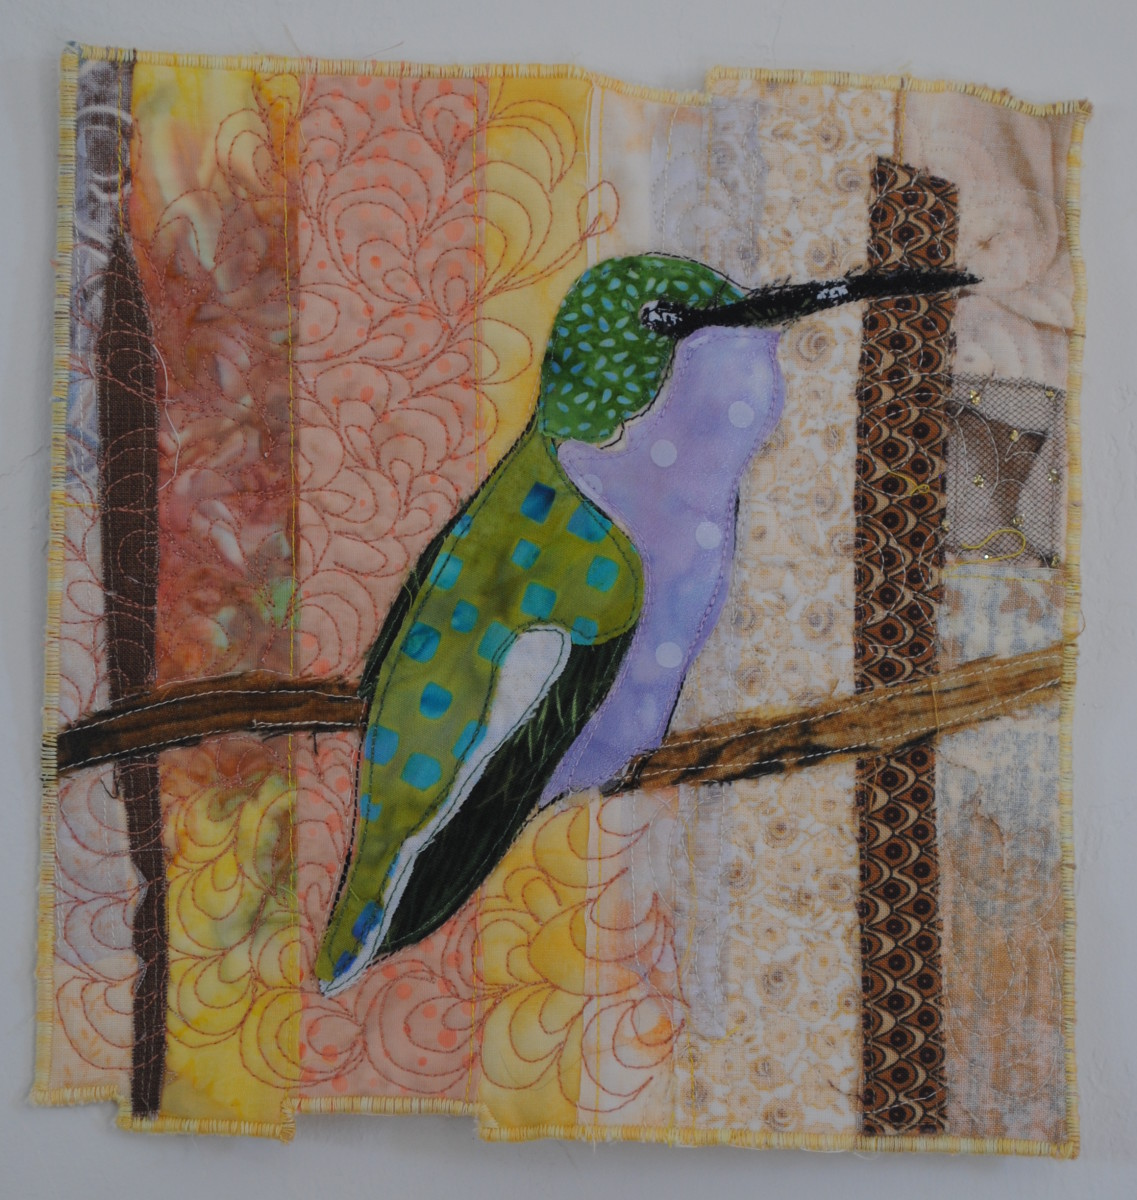 Hummingbird Beauty by Bill Meek and Denny Peterson